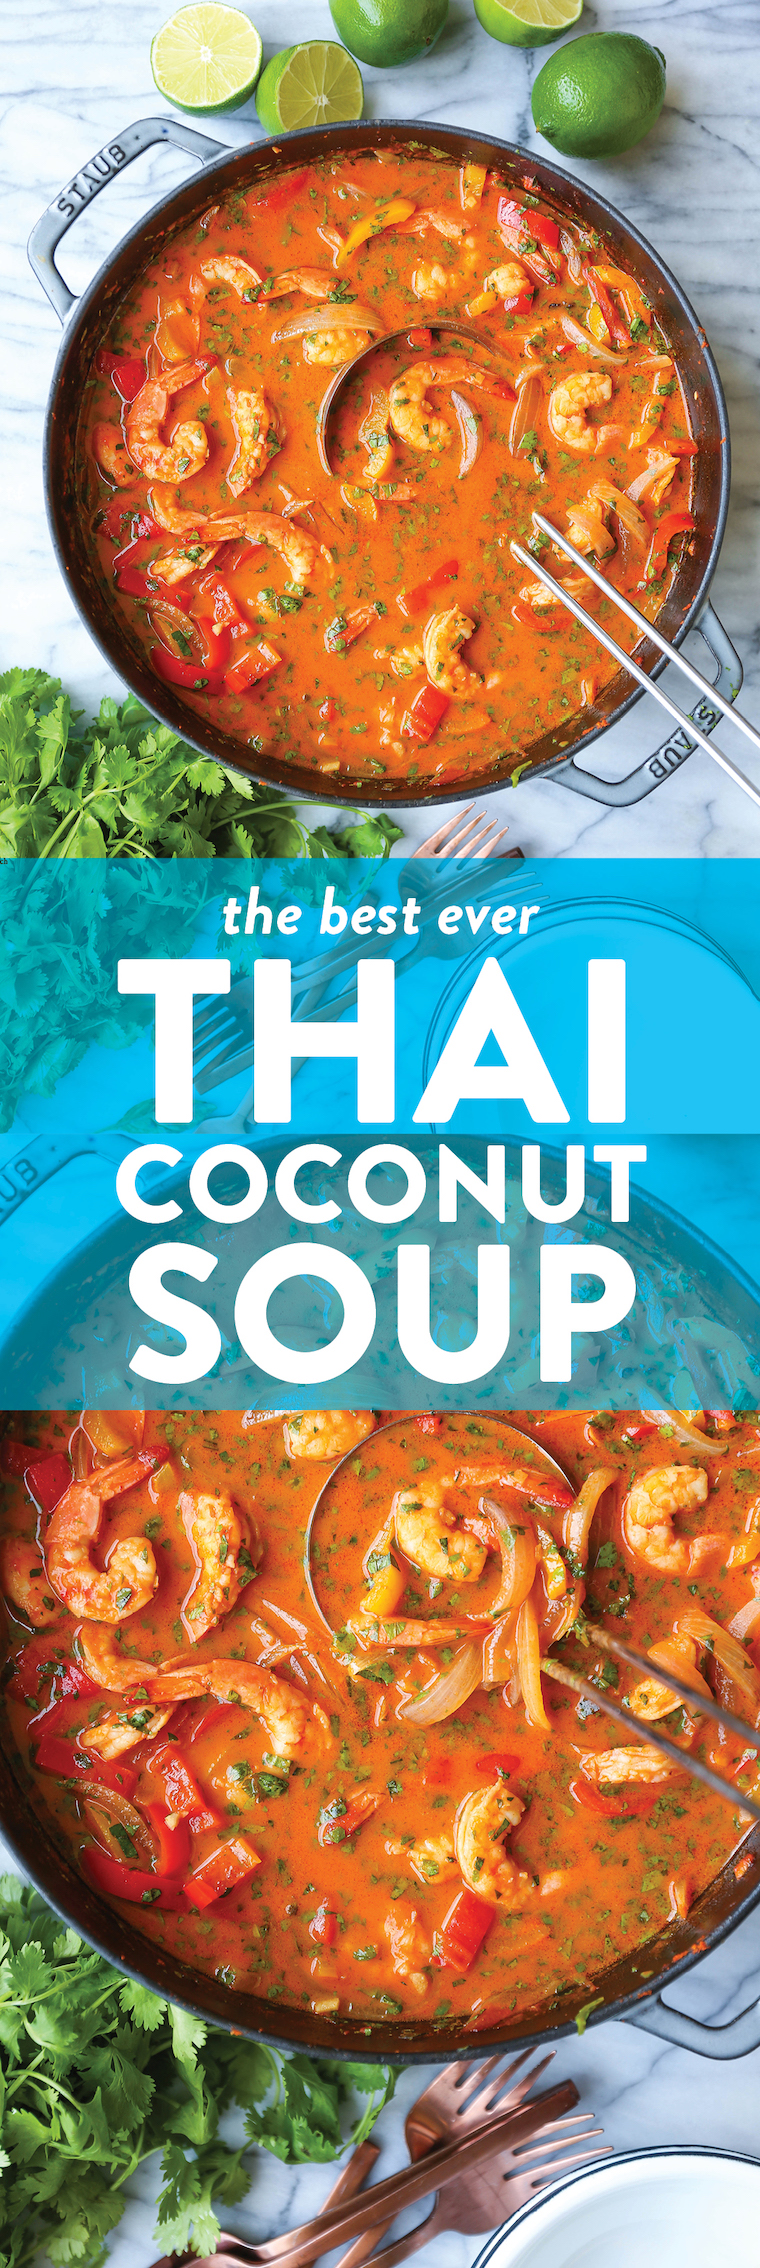 Thai Coconut Curry Soup - Skip the takeout! This will be your go-to Thai curry soup! Serve with fresh Thai basil, cilantro and lime juice. So cozy, so good.